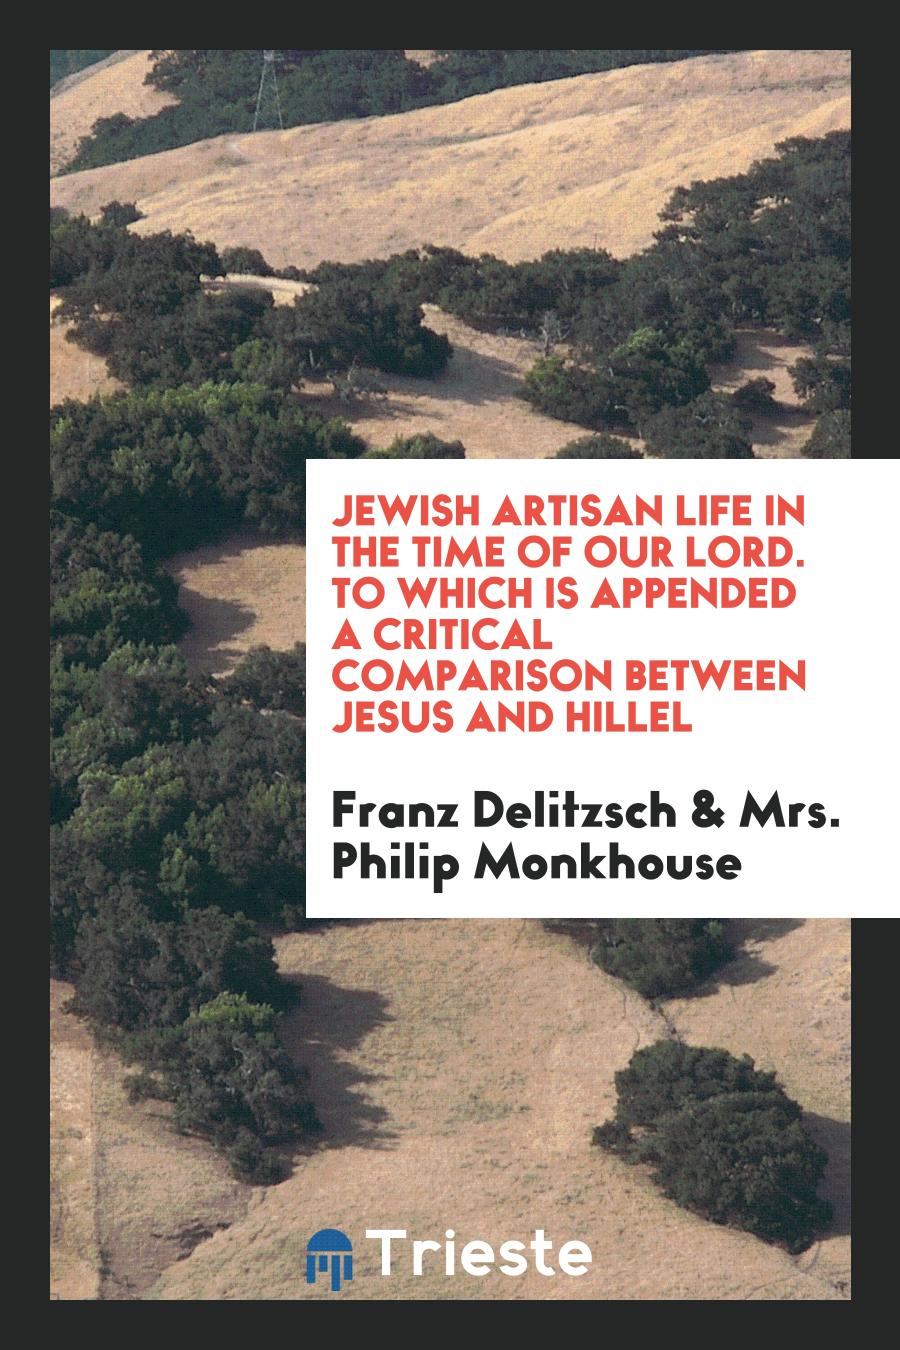 Jewish Artisan Life in the Time of Our Lord. To Which Is Appended a Critical Comparison between Jesus and Hillel